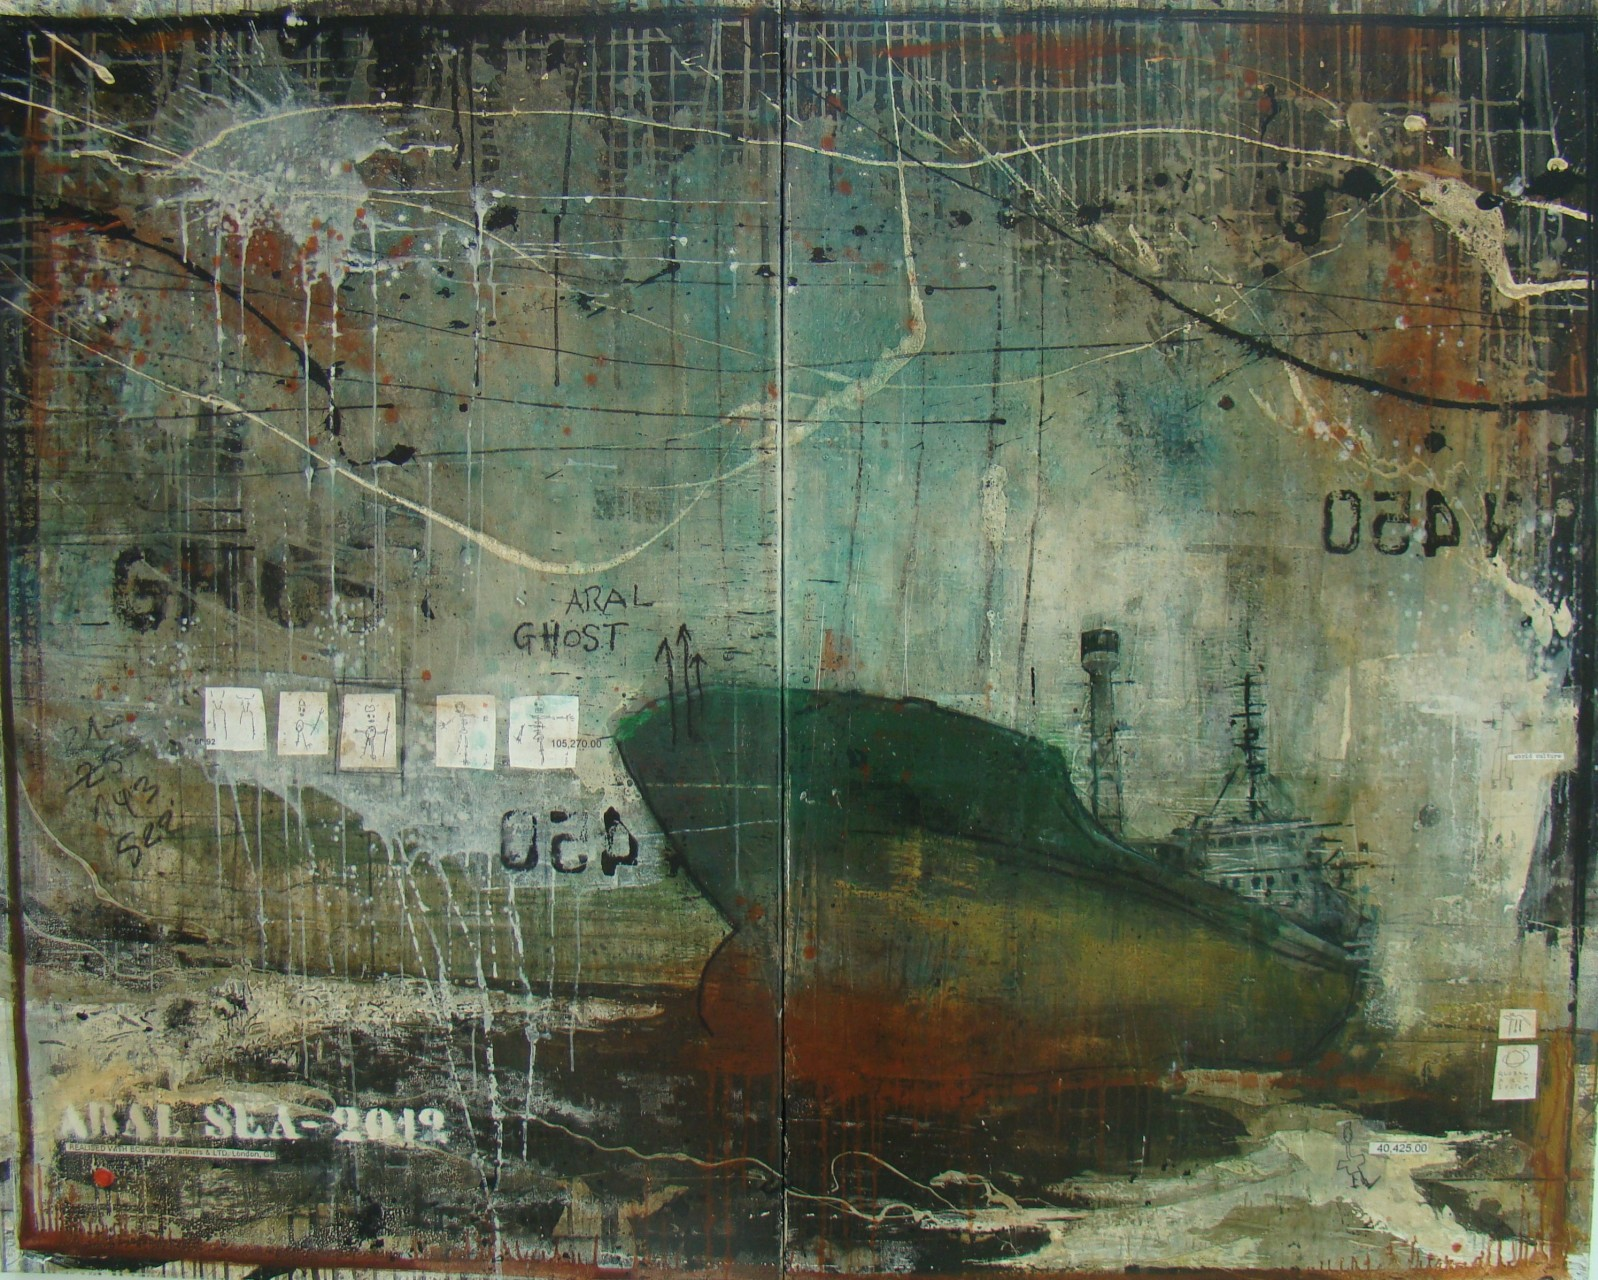 Aral Ghost - Aral Sea (KZ/UZ) - collage photo, huile, acrylique sur toile - 160 X 200 cm - 2012